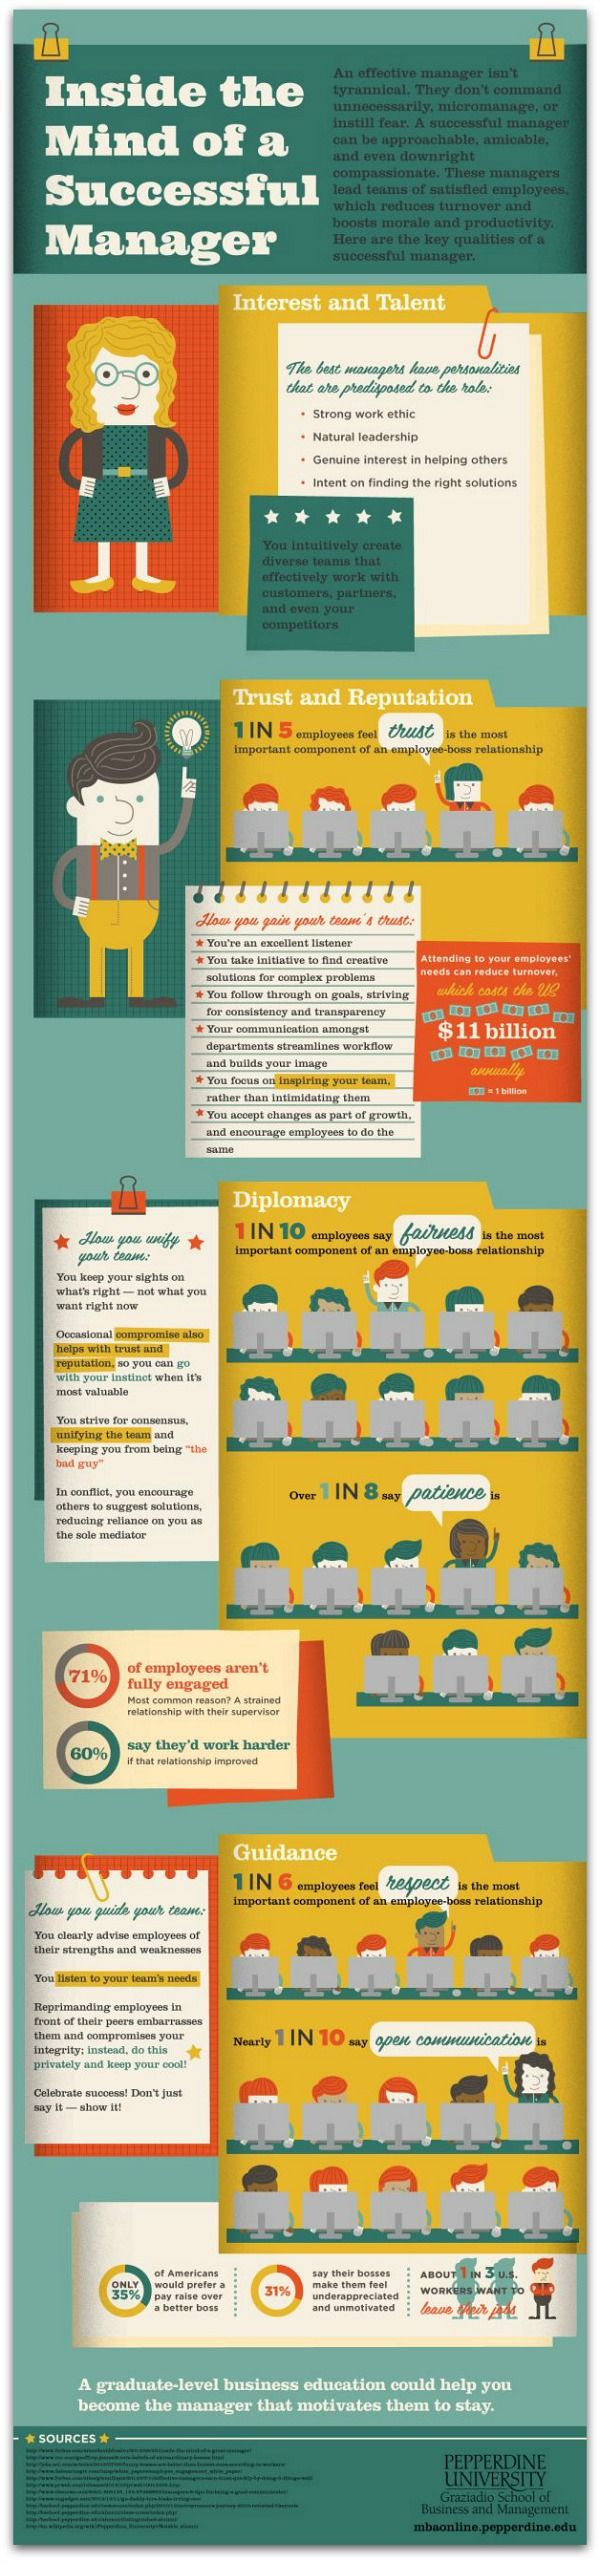 Better rapport with managers makes employees work harder #infographic